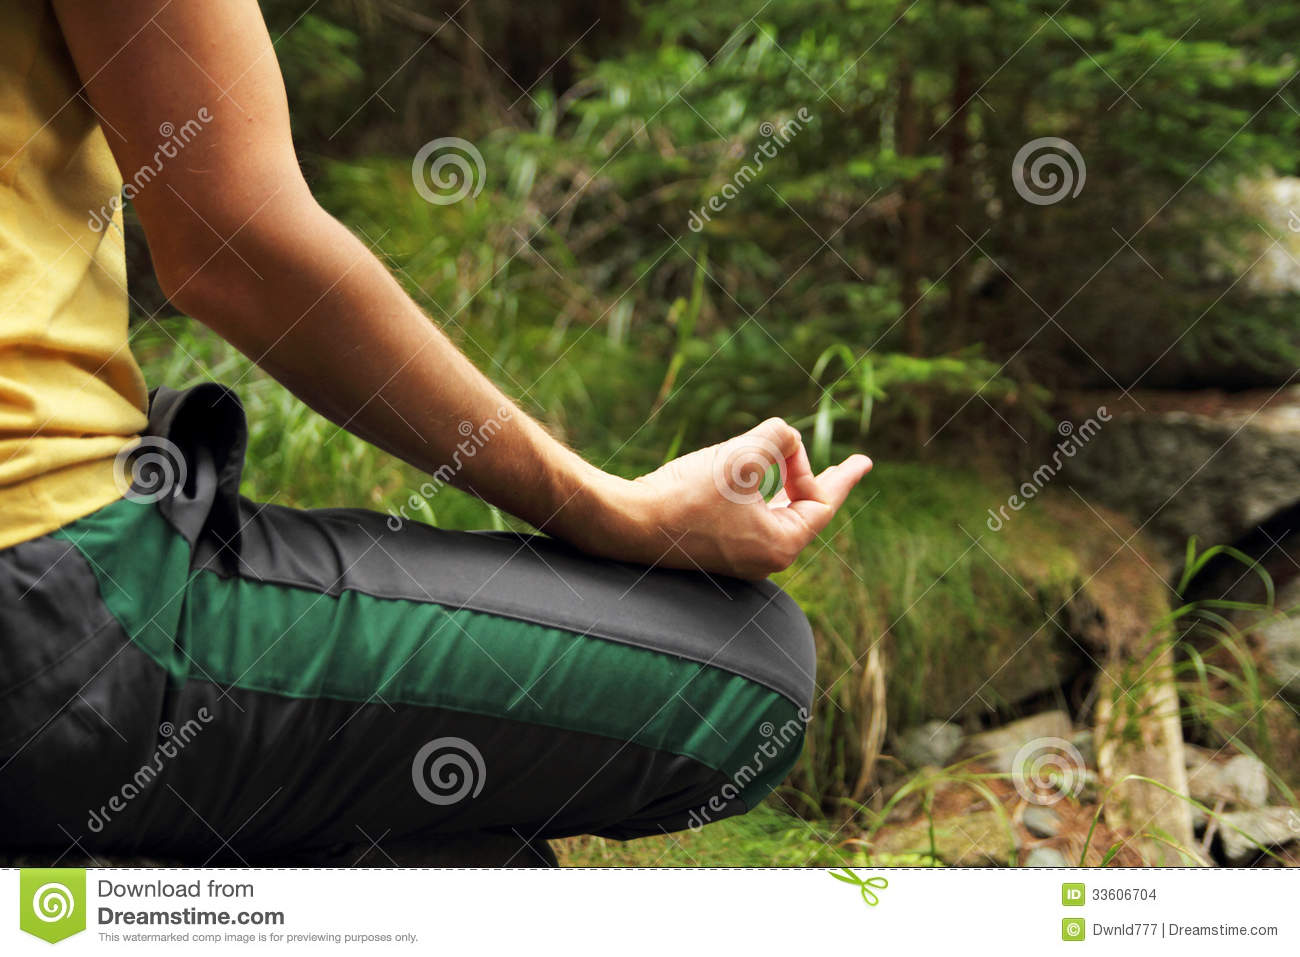 Woman Relaxing Meditation In A Forest Stock Photo - Image